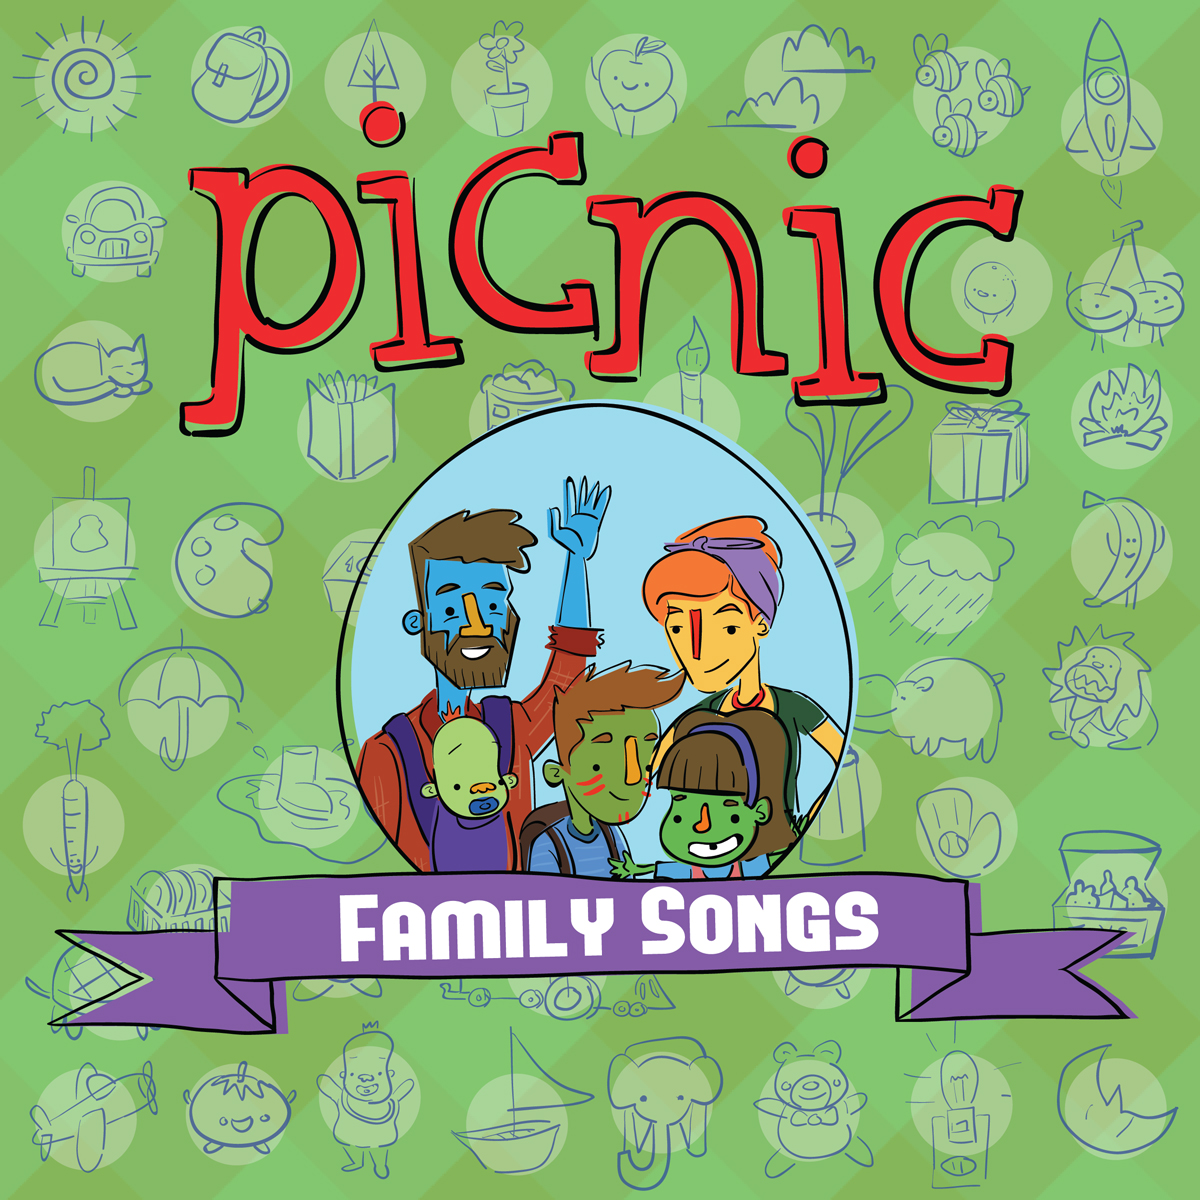 picnic : family songs